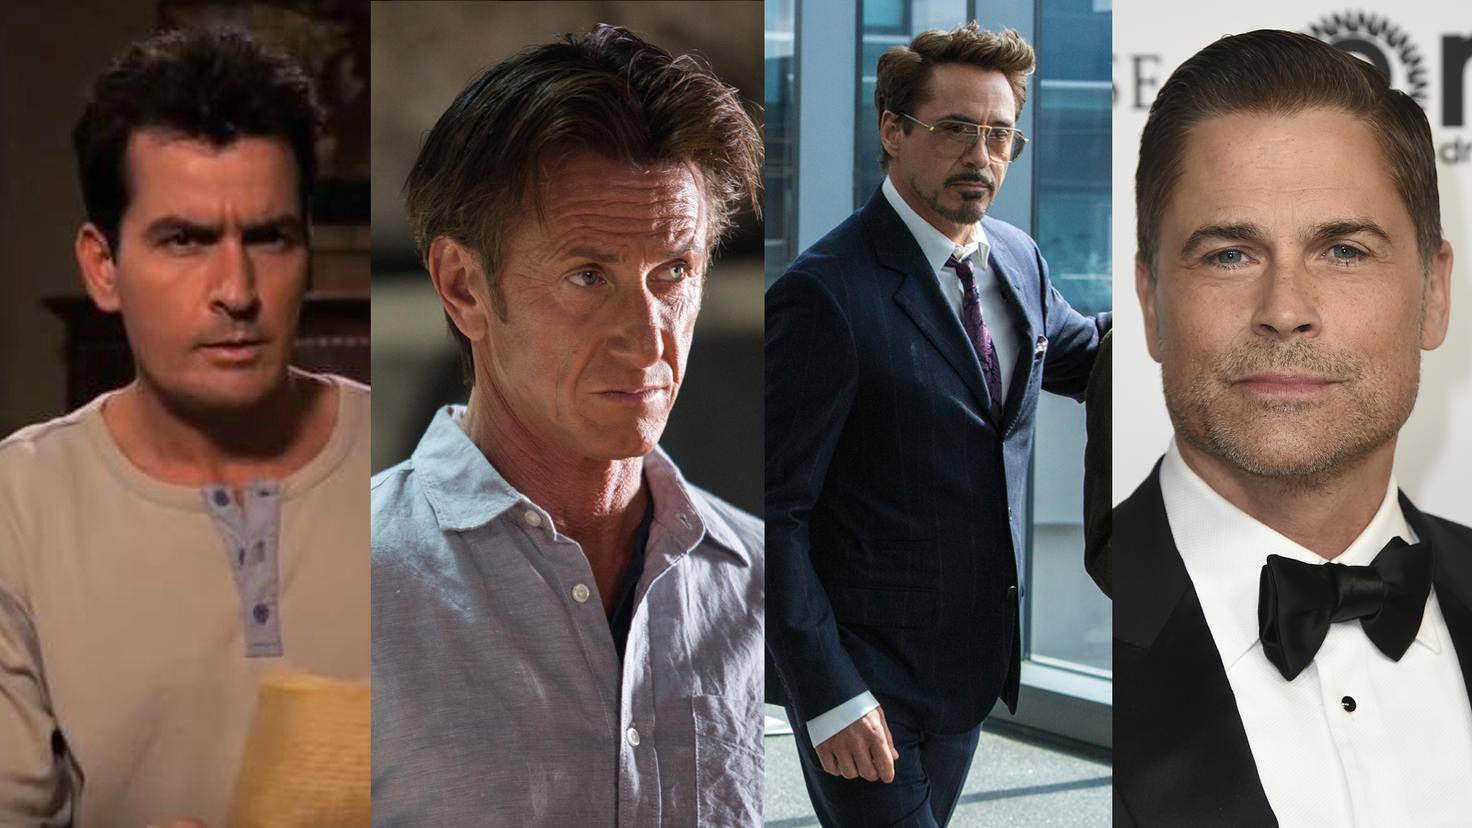 Charlie Sheen-Two and a Half Men-YouTube-Serien Intros Highlights-TheGunman-Sean Penn-Studiocanal-Spider-Man-Homecoming-Robert Downey Jr-Sony Pictures-Rob Lowe-picture alliance-AP Images-89325554